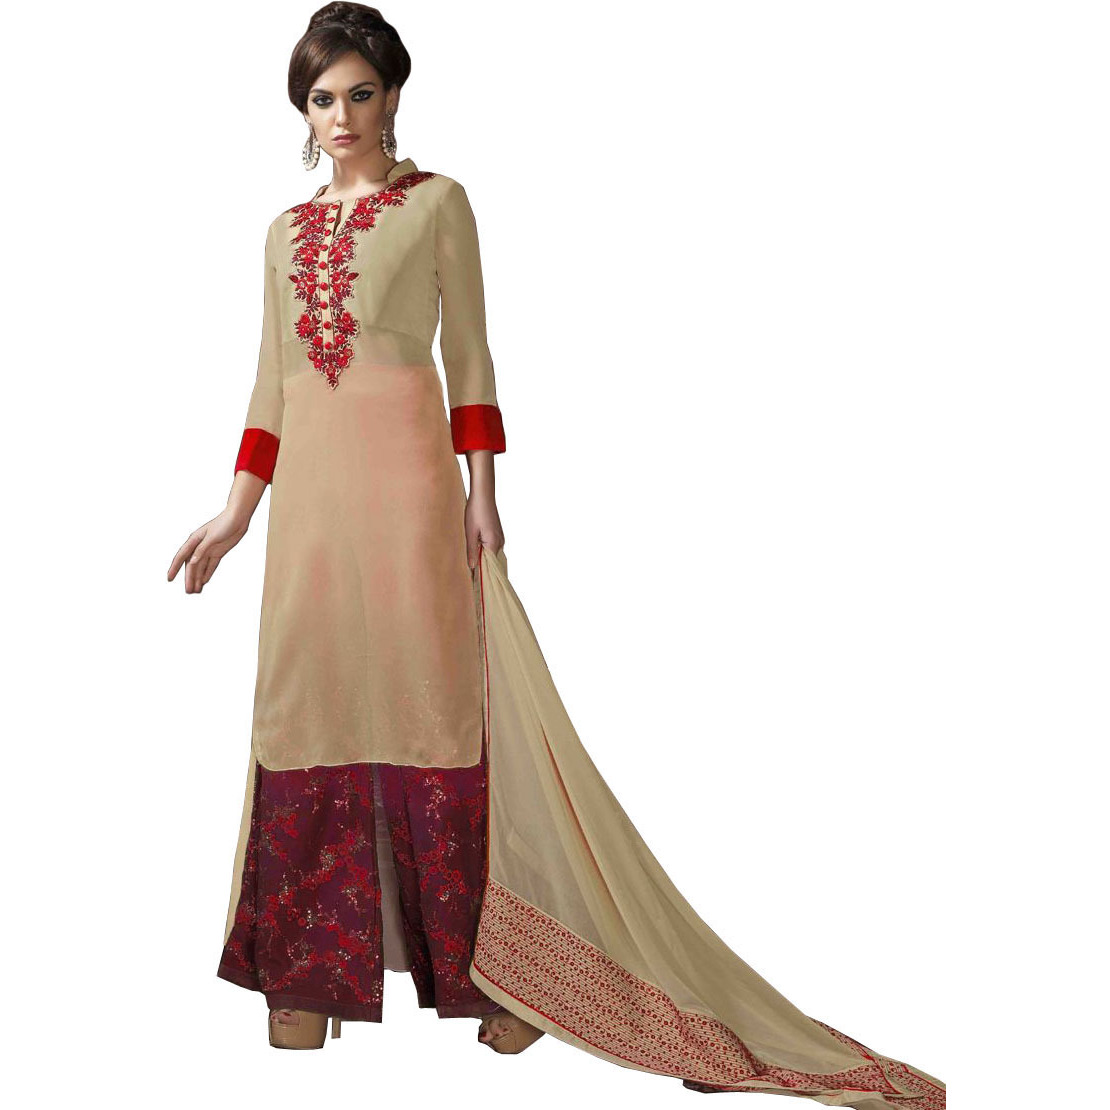 Beige and Red Designer Long Palazzo Salwar Suit with Embroidered Patch on Neck and Sequins on Salwar